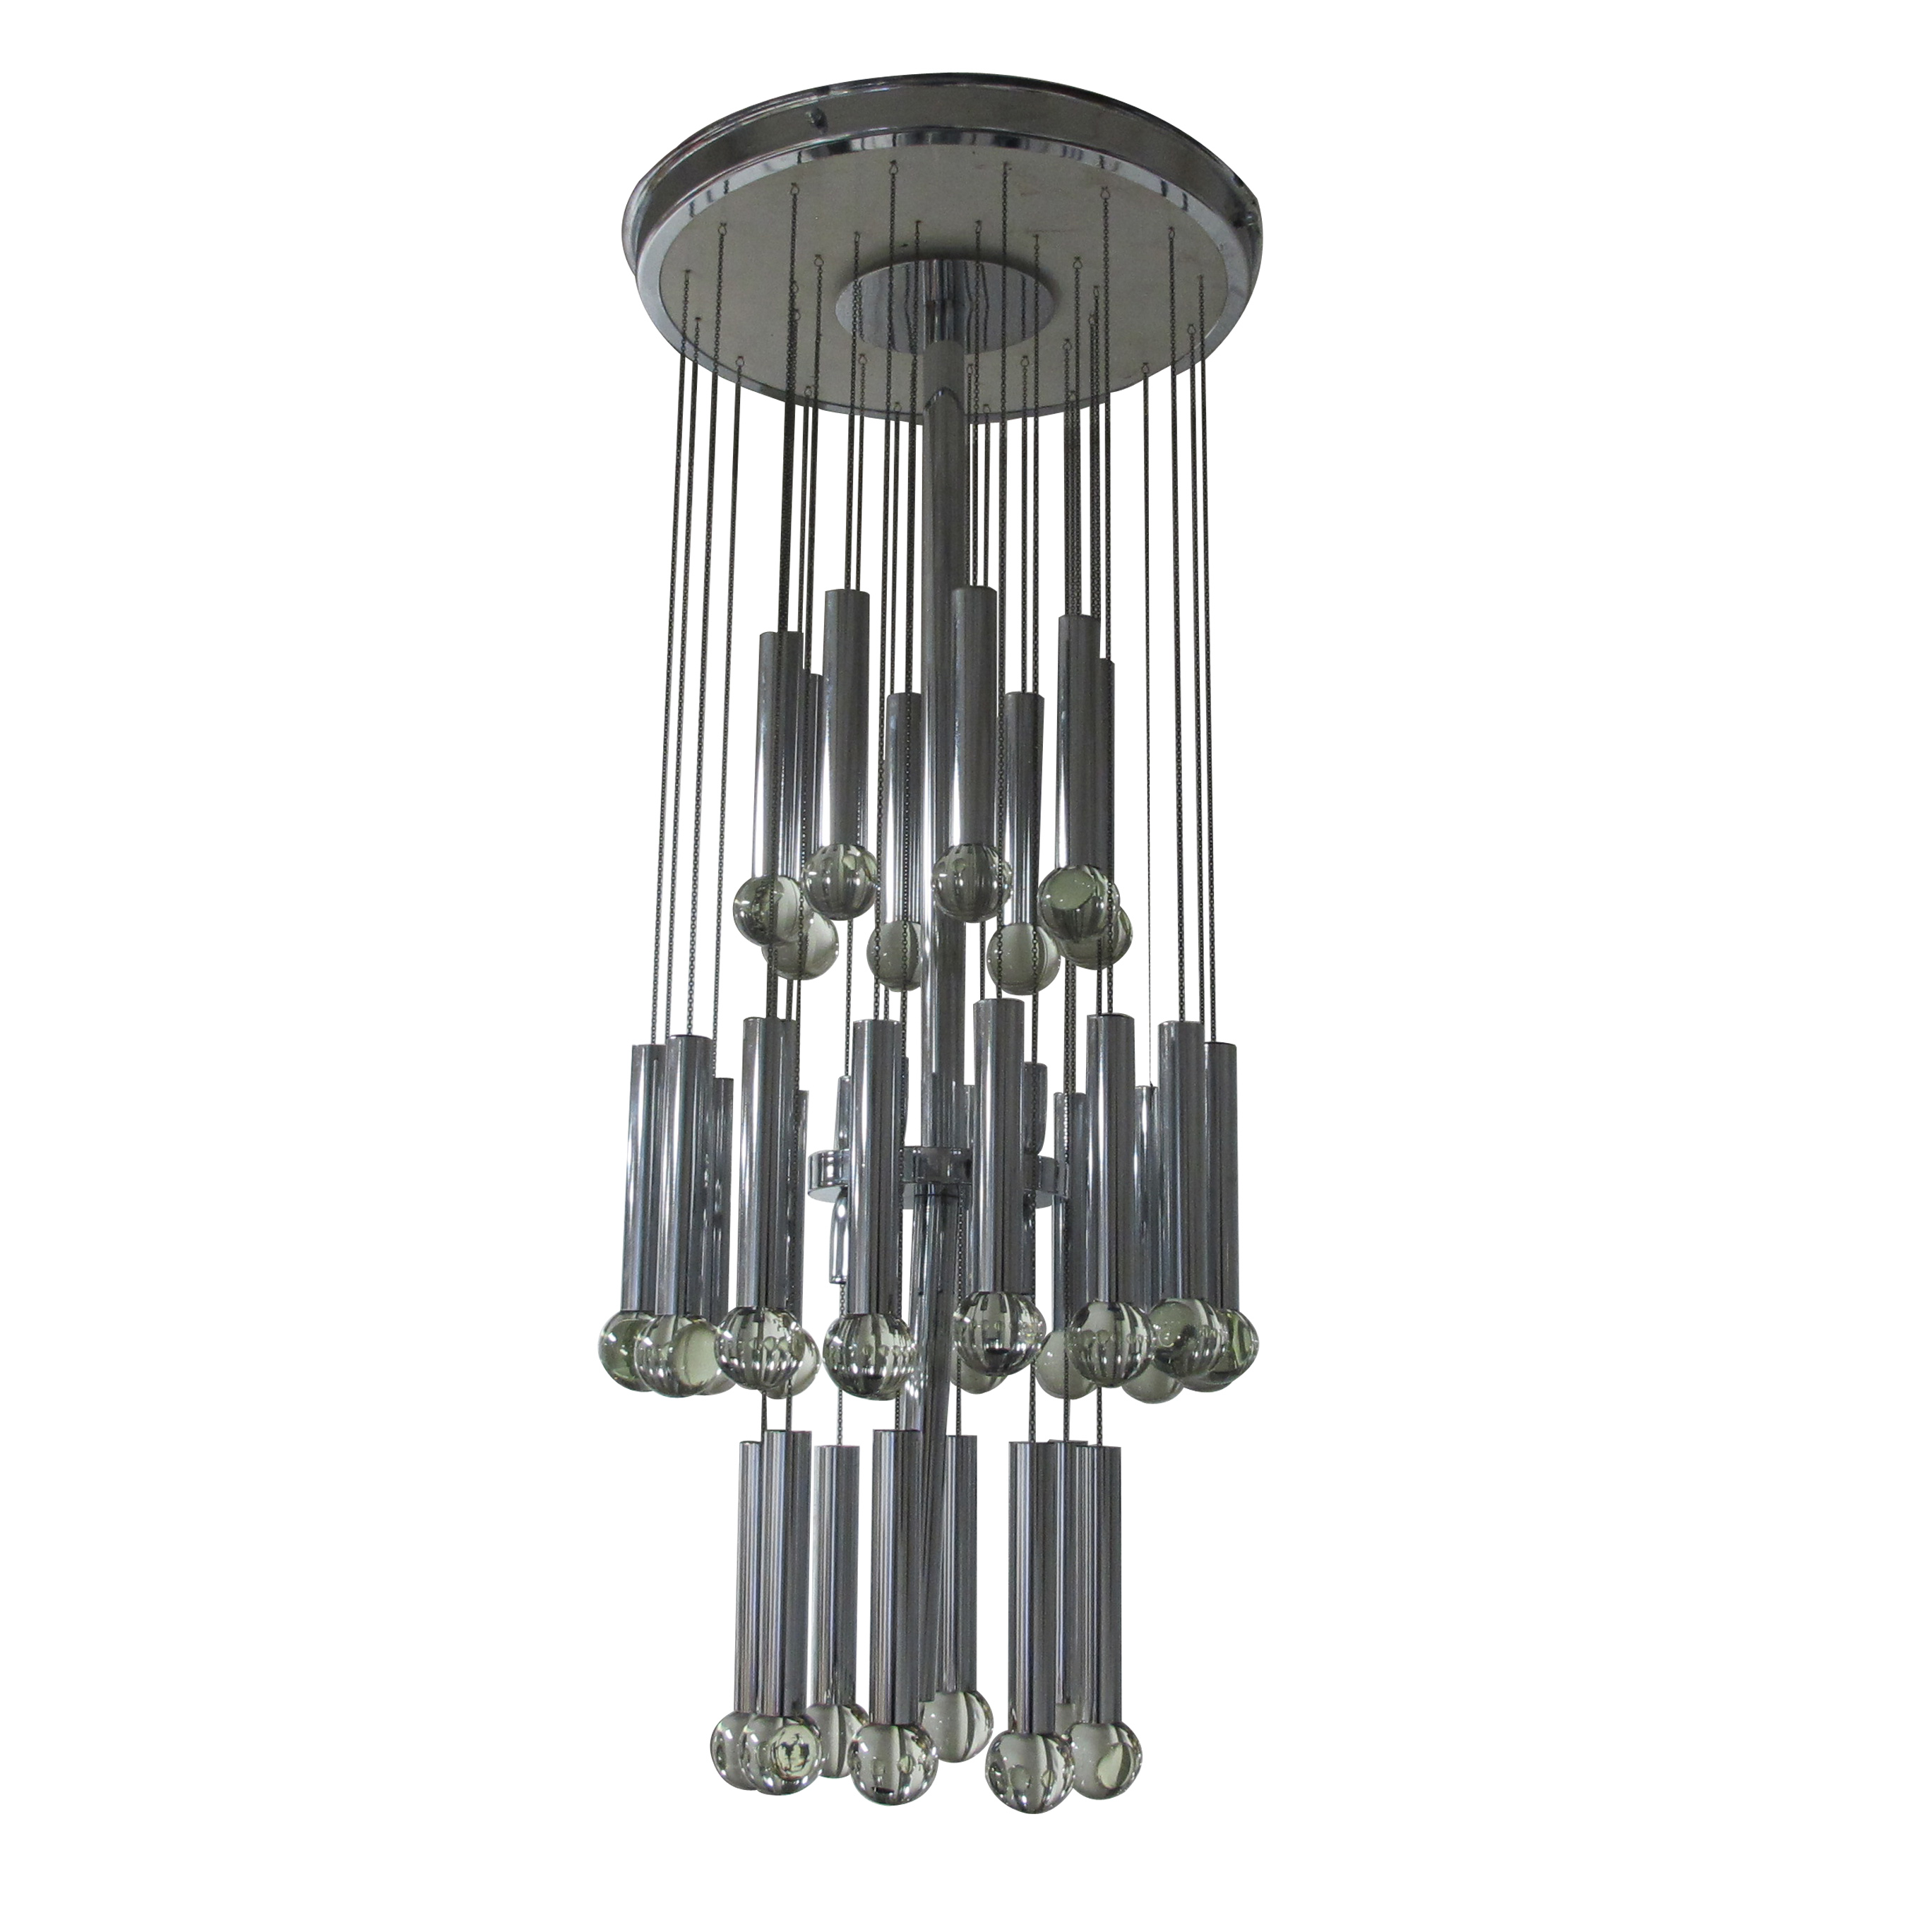 Chrome and glass sciolari chandelier les trois garons chrome and glass sciolari chandelier aloadofball Image collections